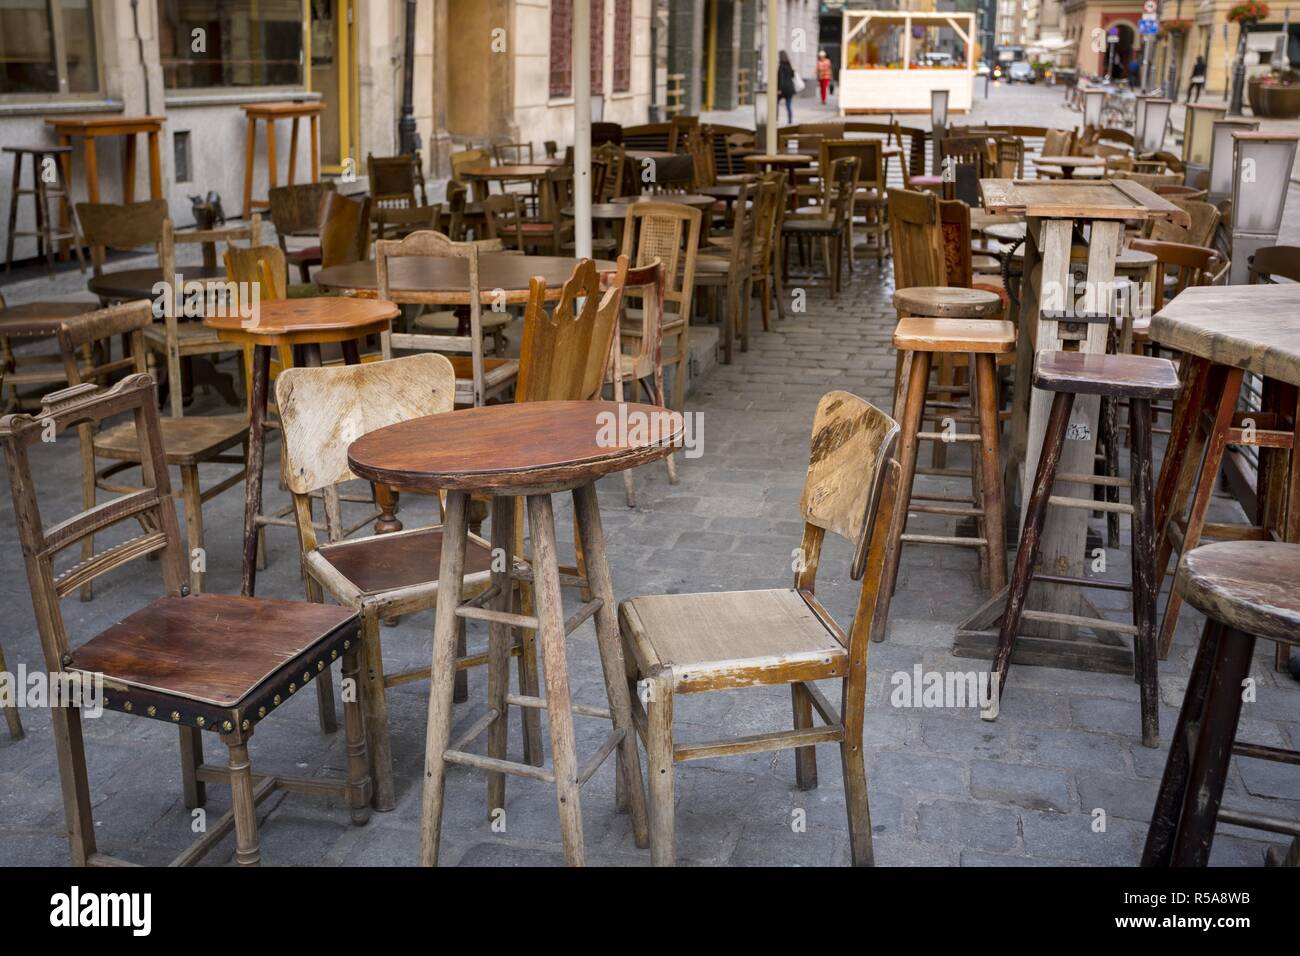 Wroclaw bar stock photos images alamy